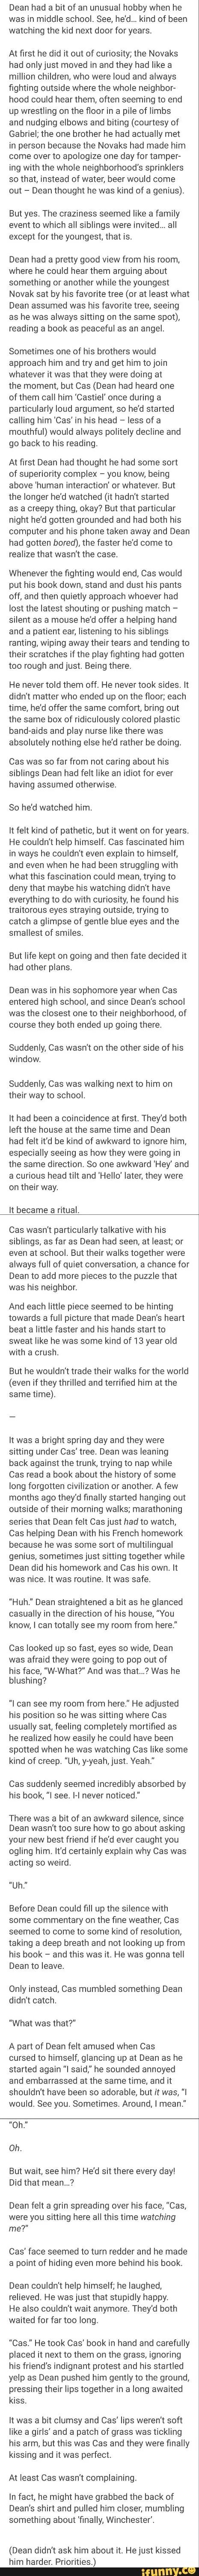 I dont know who wrote this. But OMG is soooo sweet ♡ I kinda melt reading it. #destielfluff